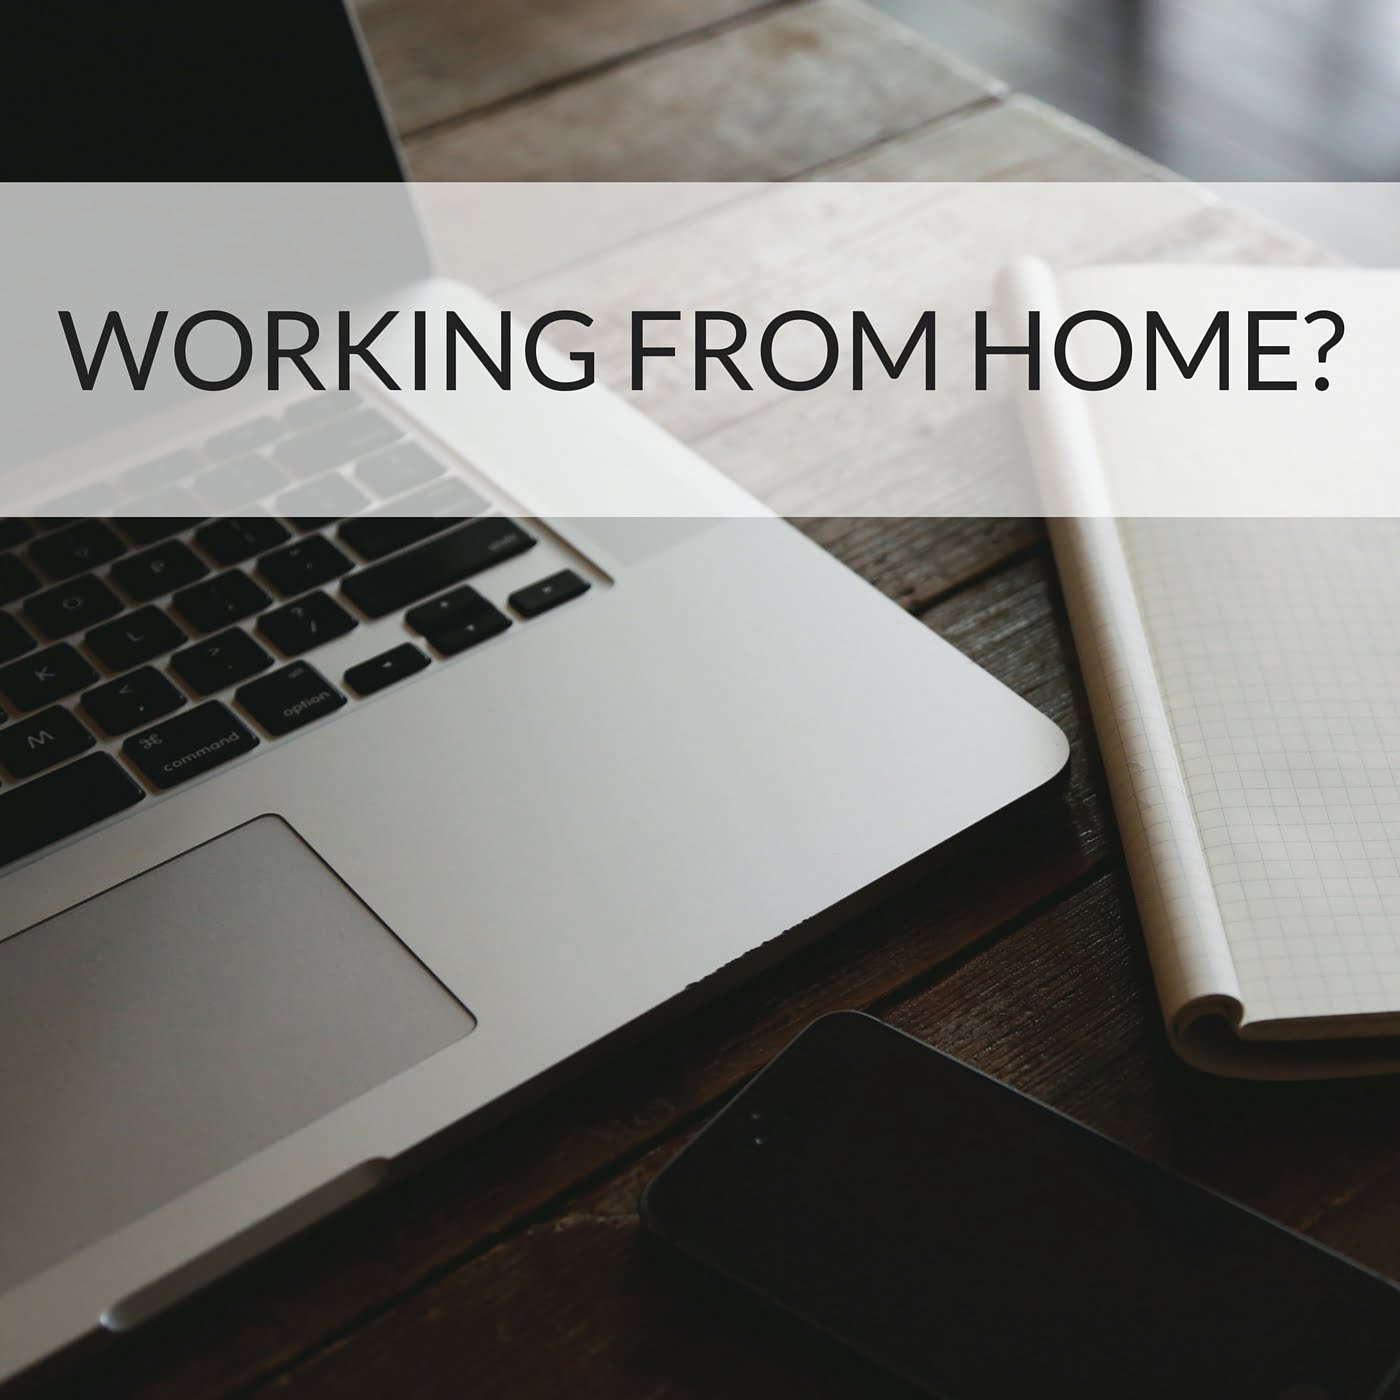 Top Flexible Work From Home Jobs In 2019 - Work At Home Helper